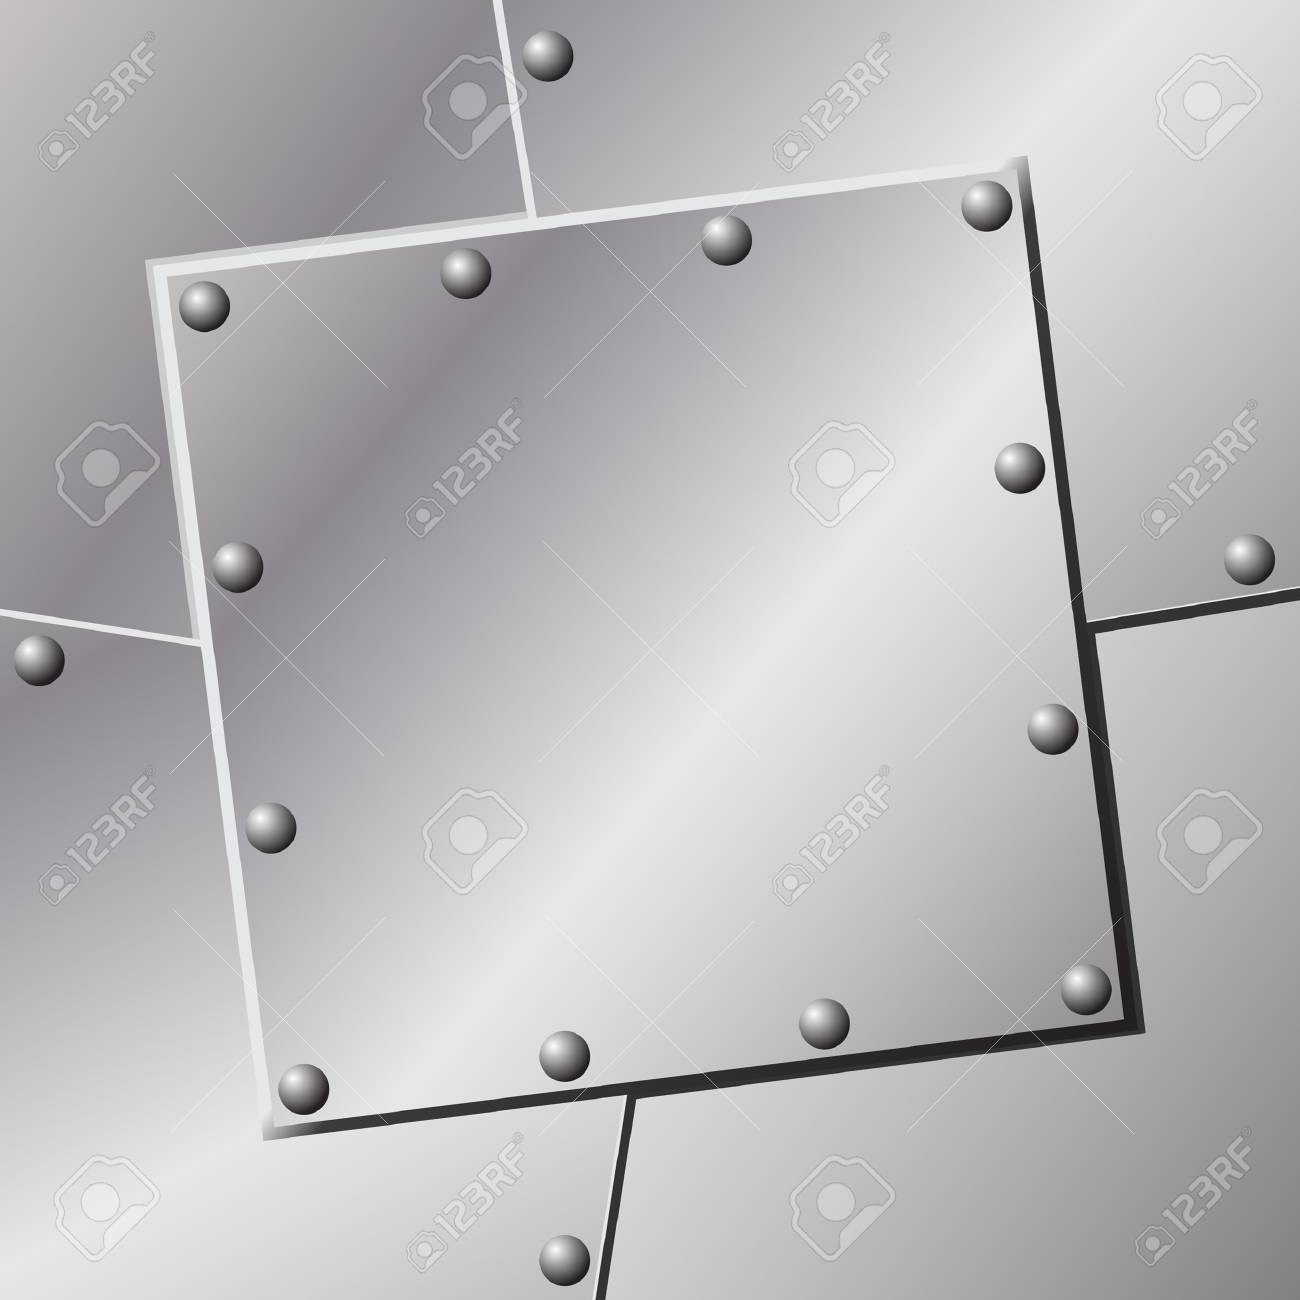 A Metal Background with Rivets Stock Vector - 7124700